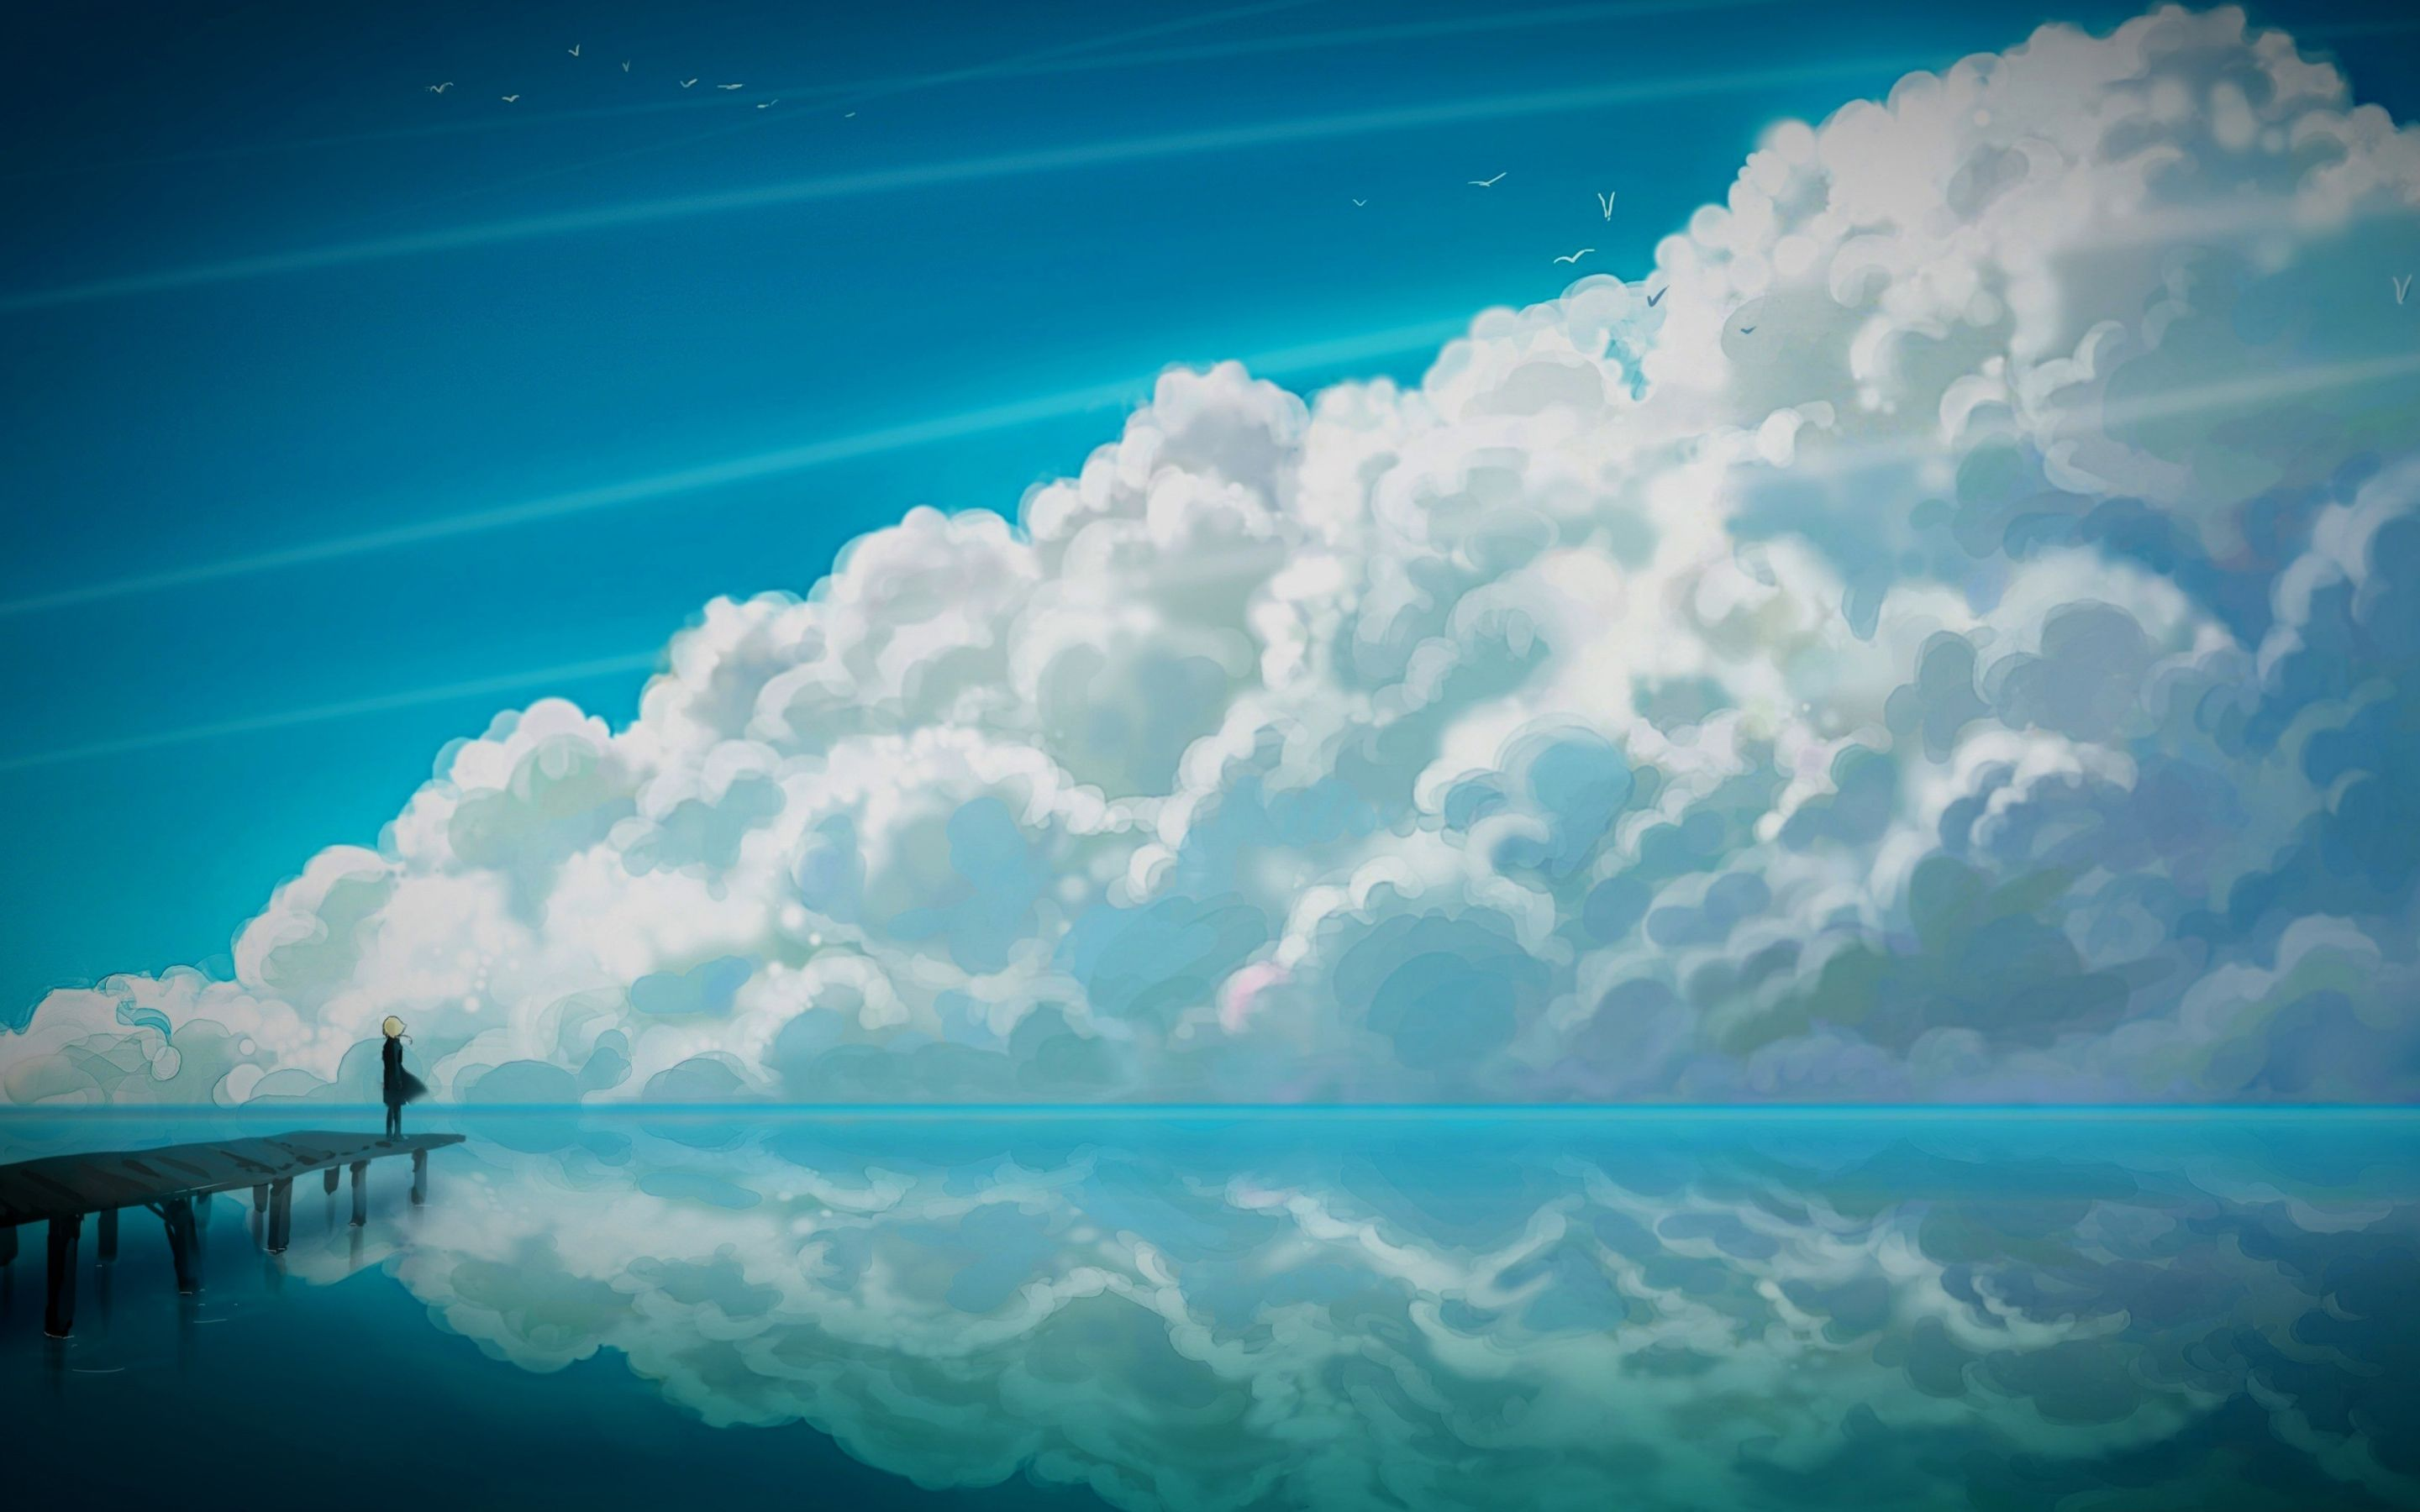 Blue Anime Sky HD Wallpapers High Definition Wallpapers